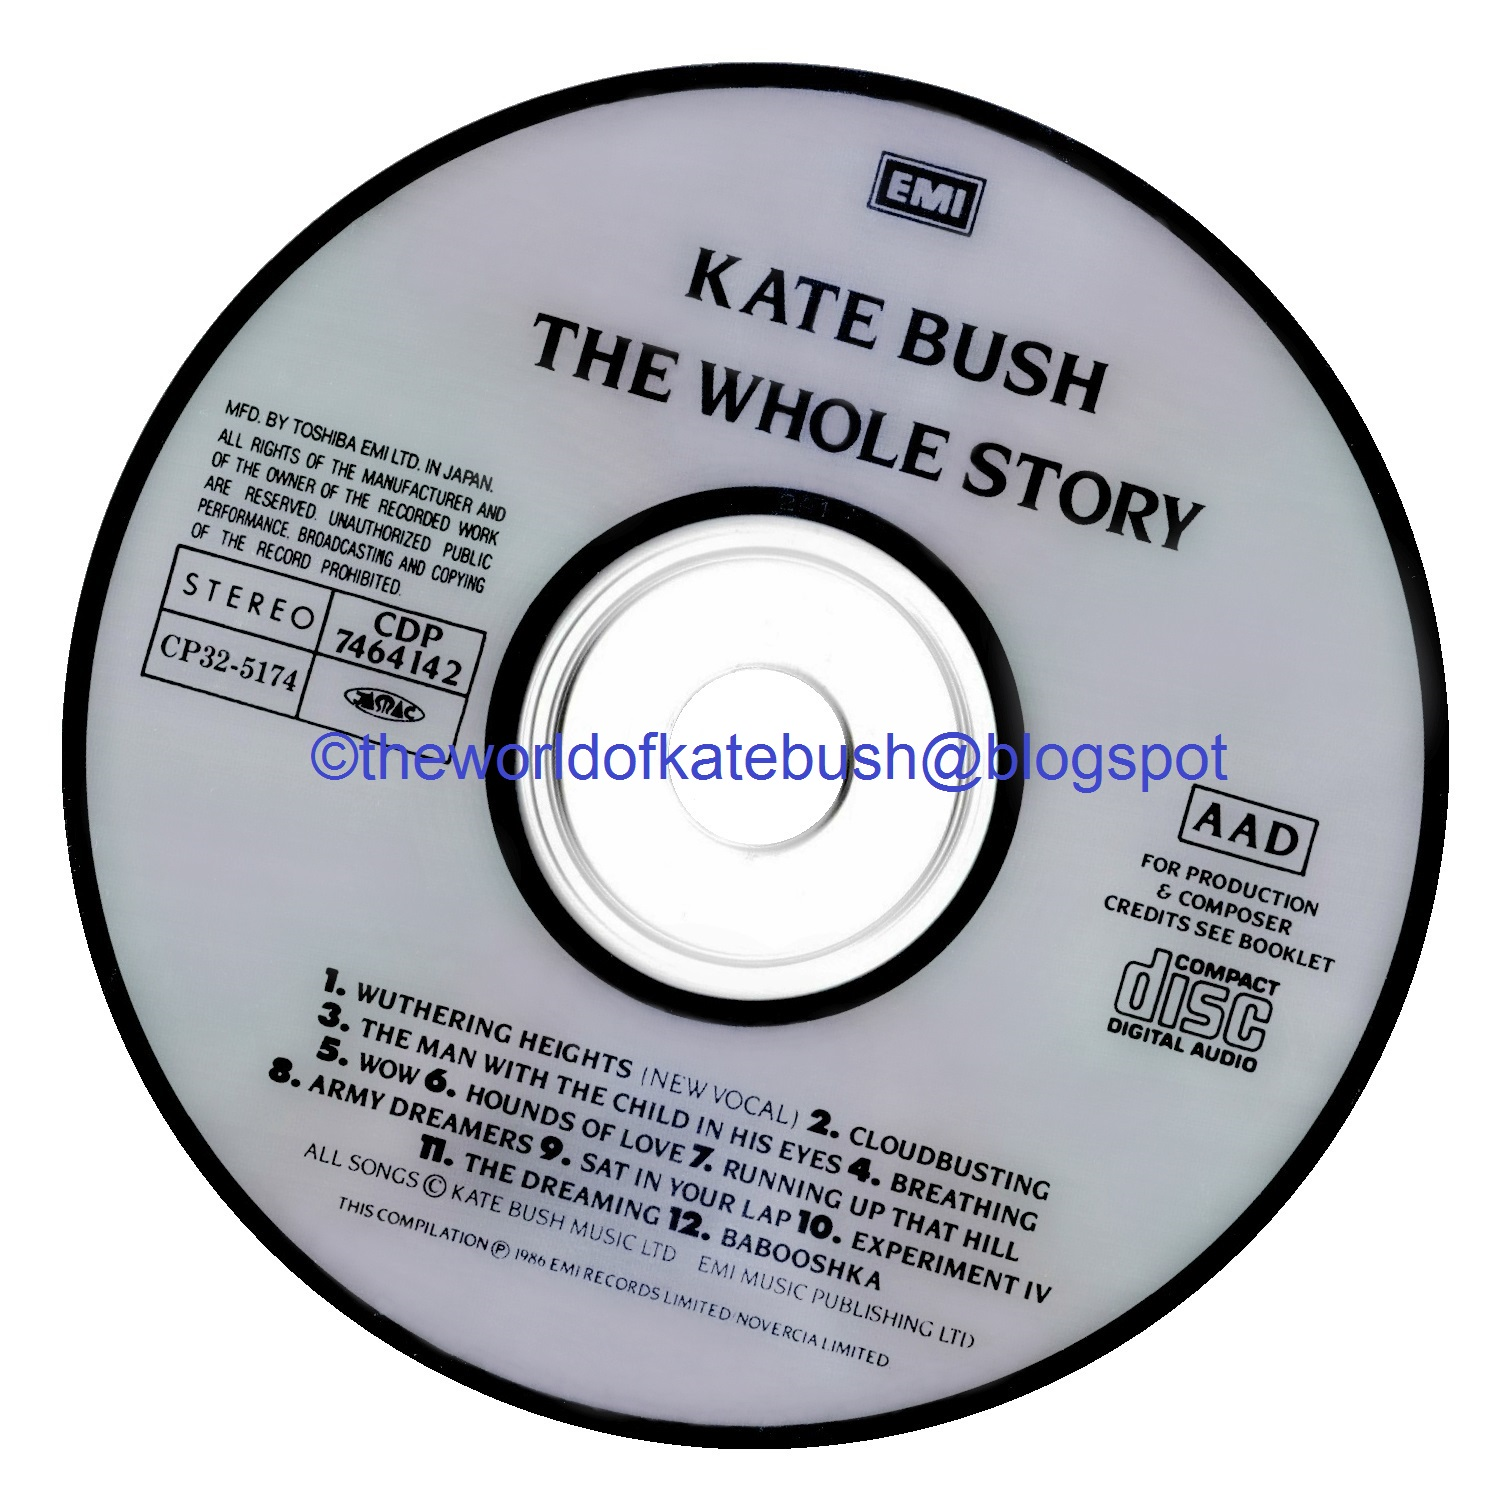 THE WORLD OF KATE BUSH: The Whole Story - Japan CD Release